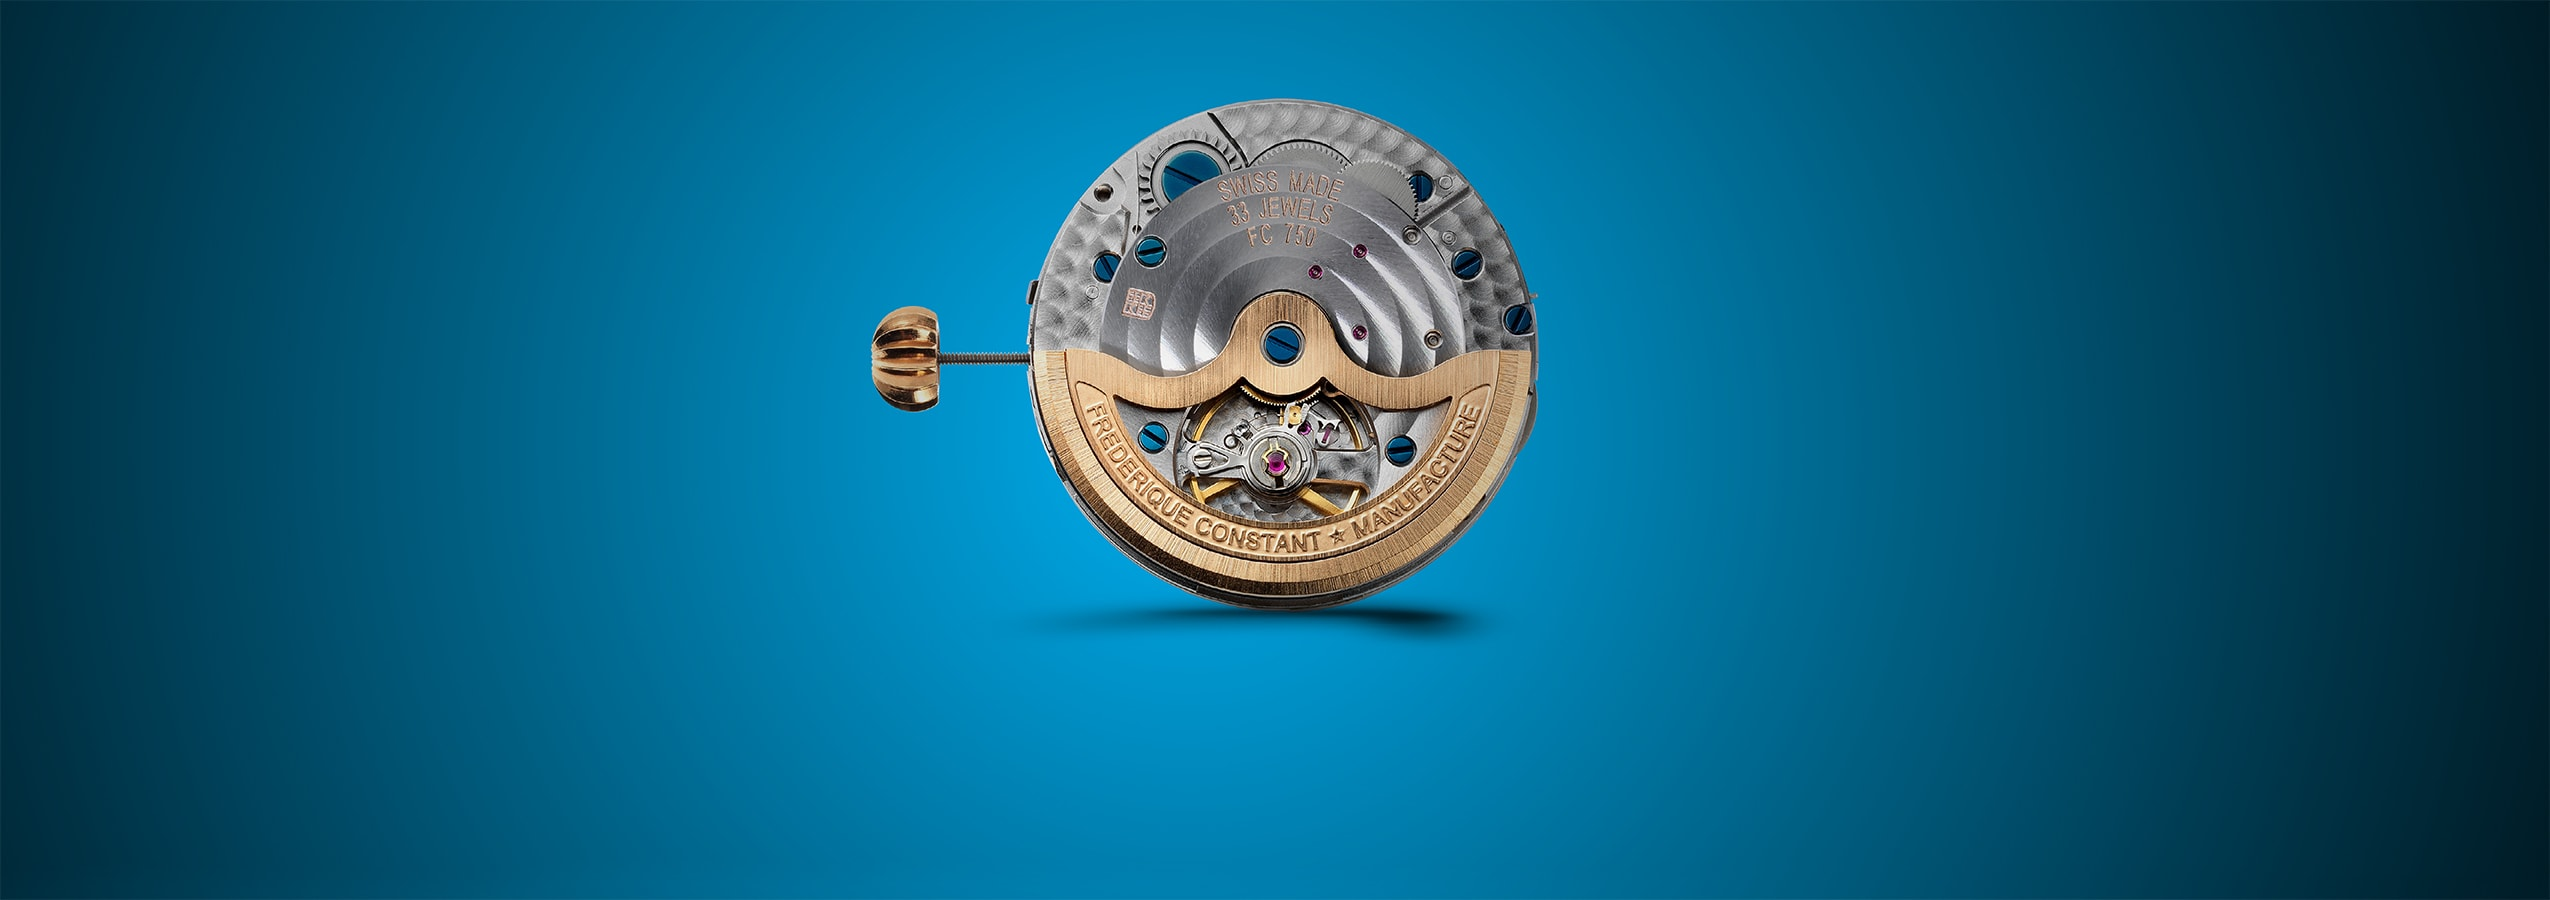 The mechanical part of the FC-750 is an in-house automatic caliber with date, set by the crown at 3 o'clock